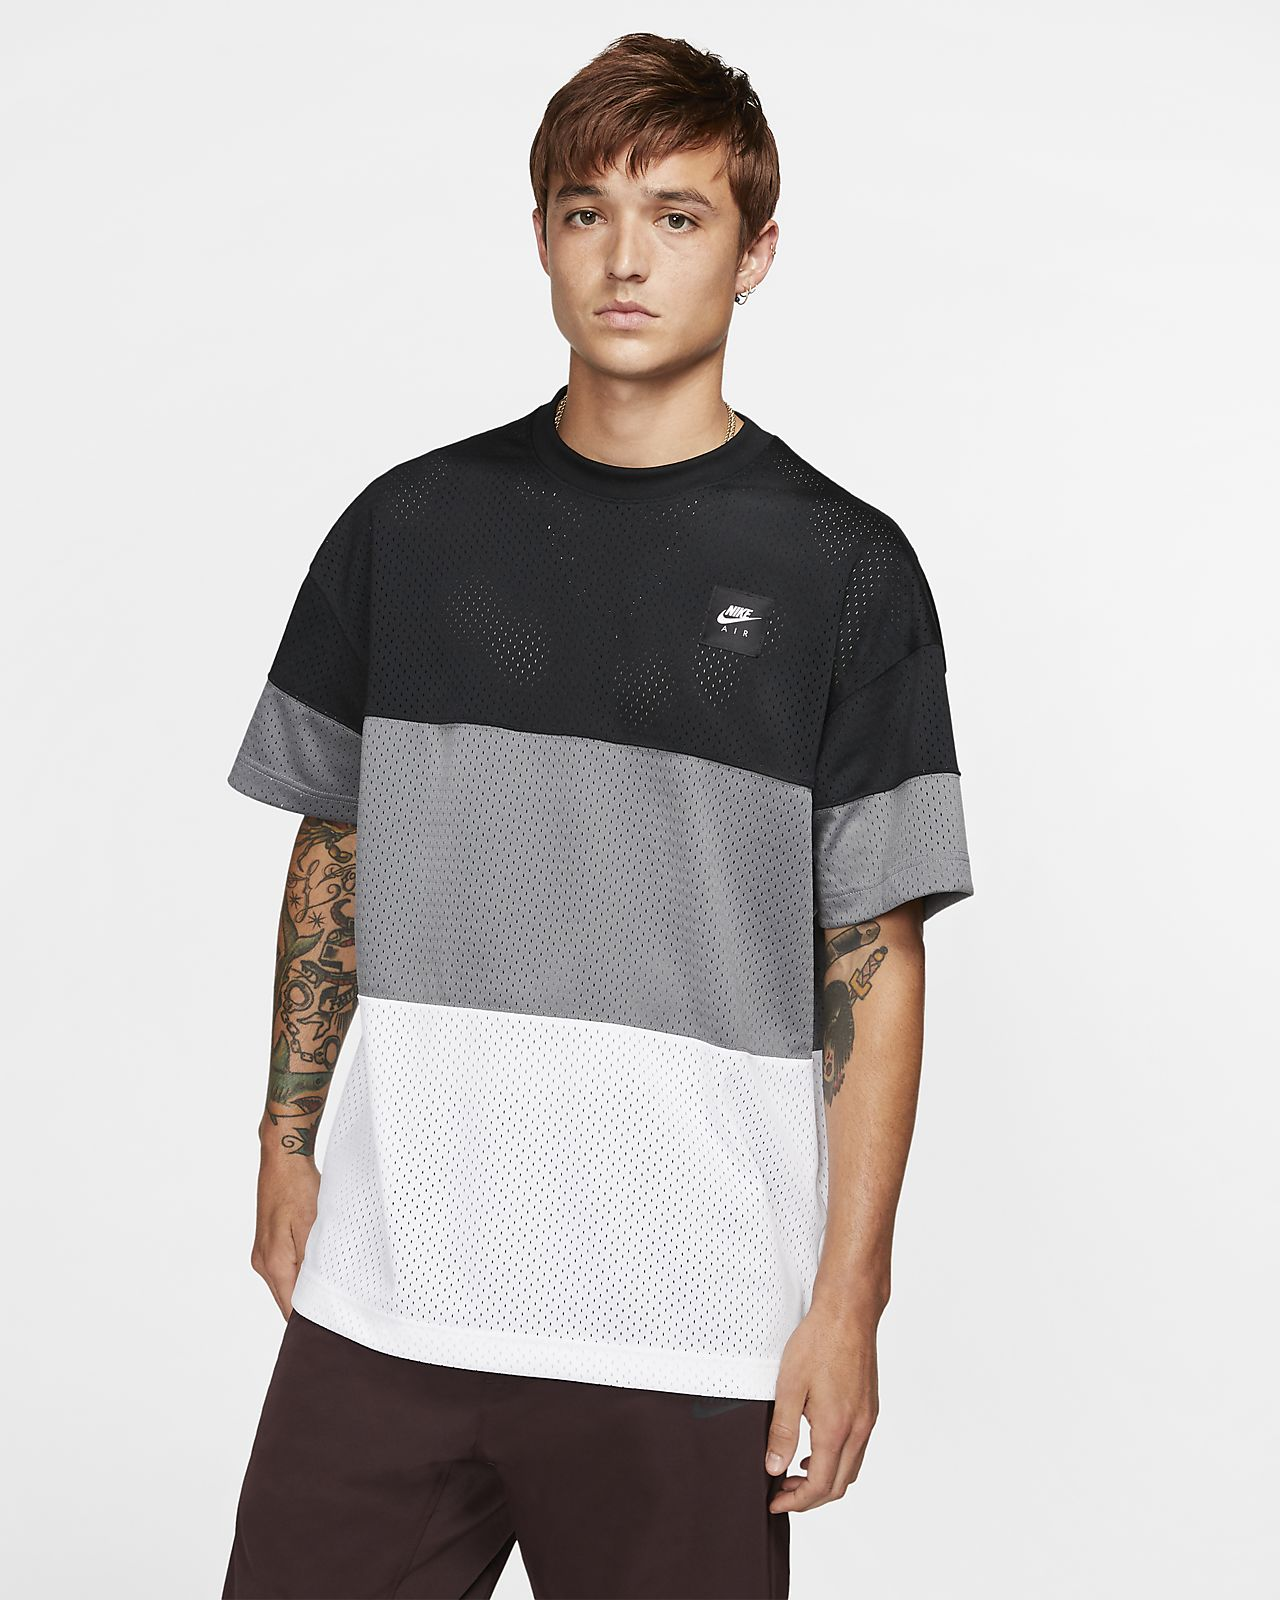 Nike Air Men's Short-Sleeve Knit Top